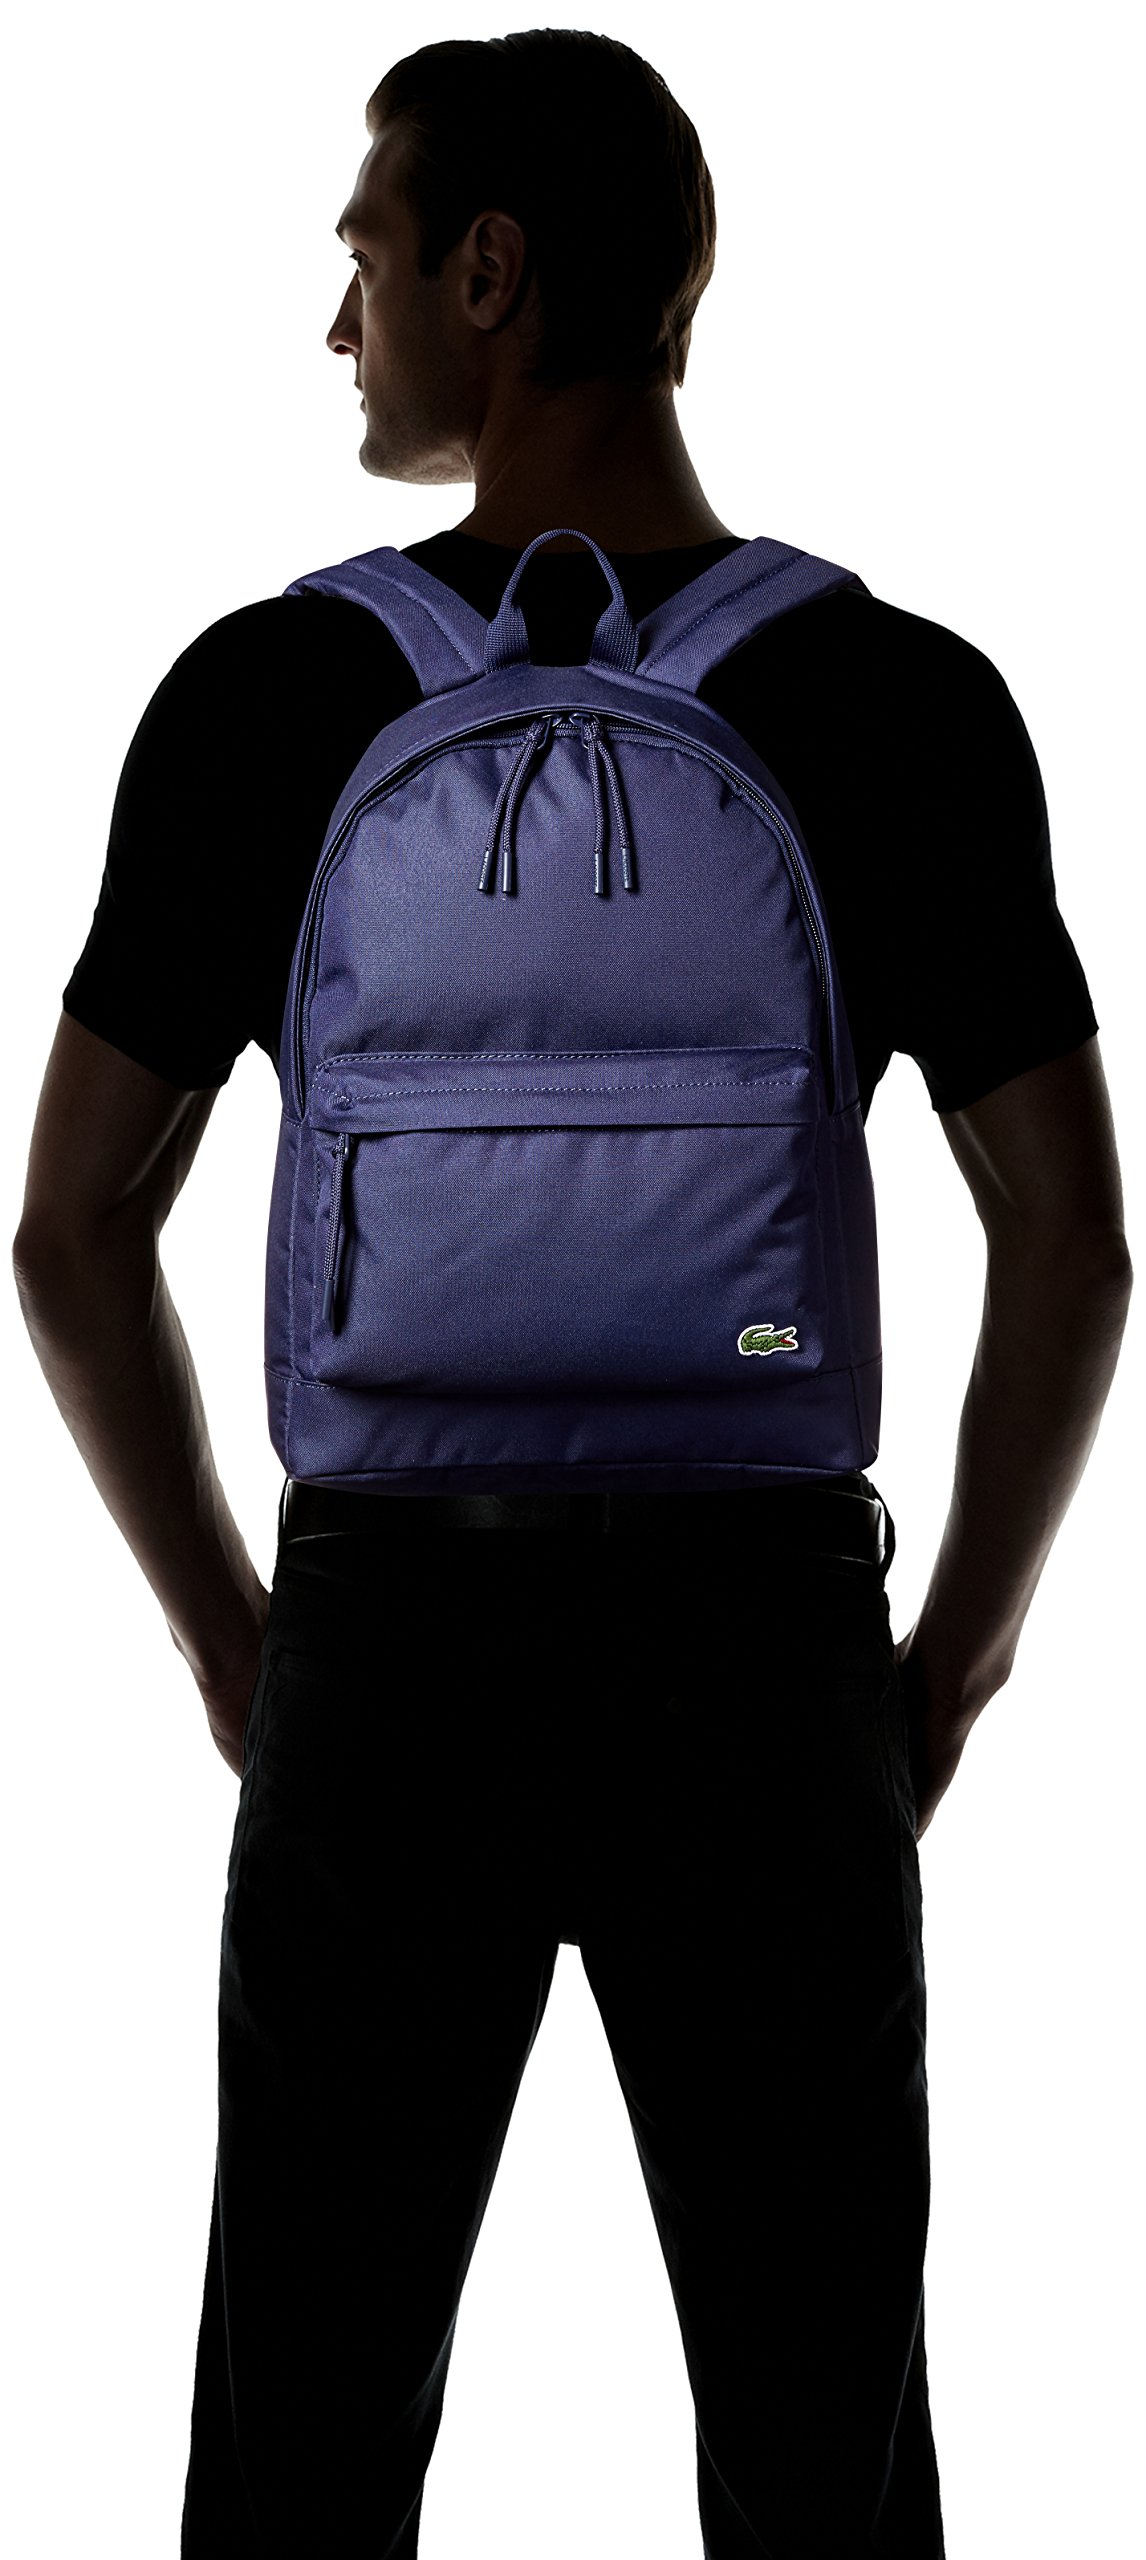 Lacoste Men's Neocroc Backpack, Peacoat by Lacoste (Image #4)